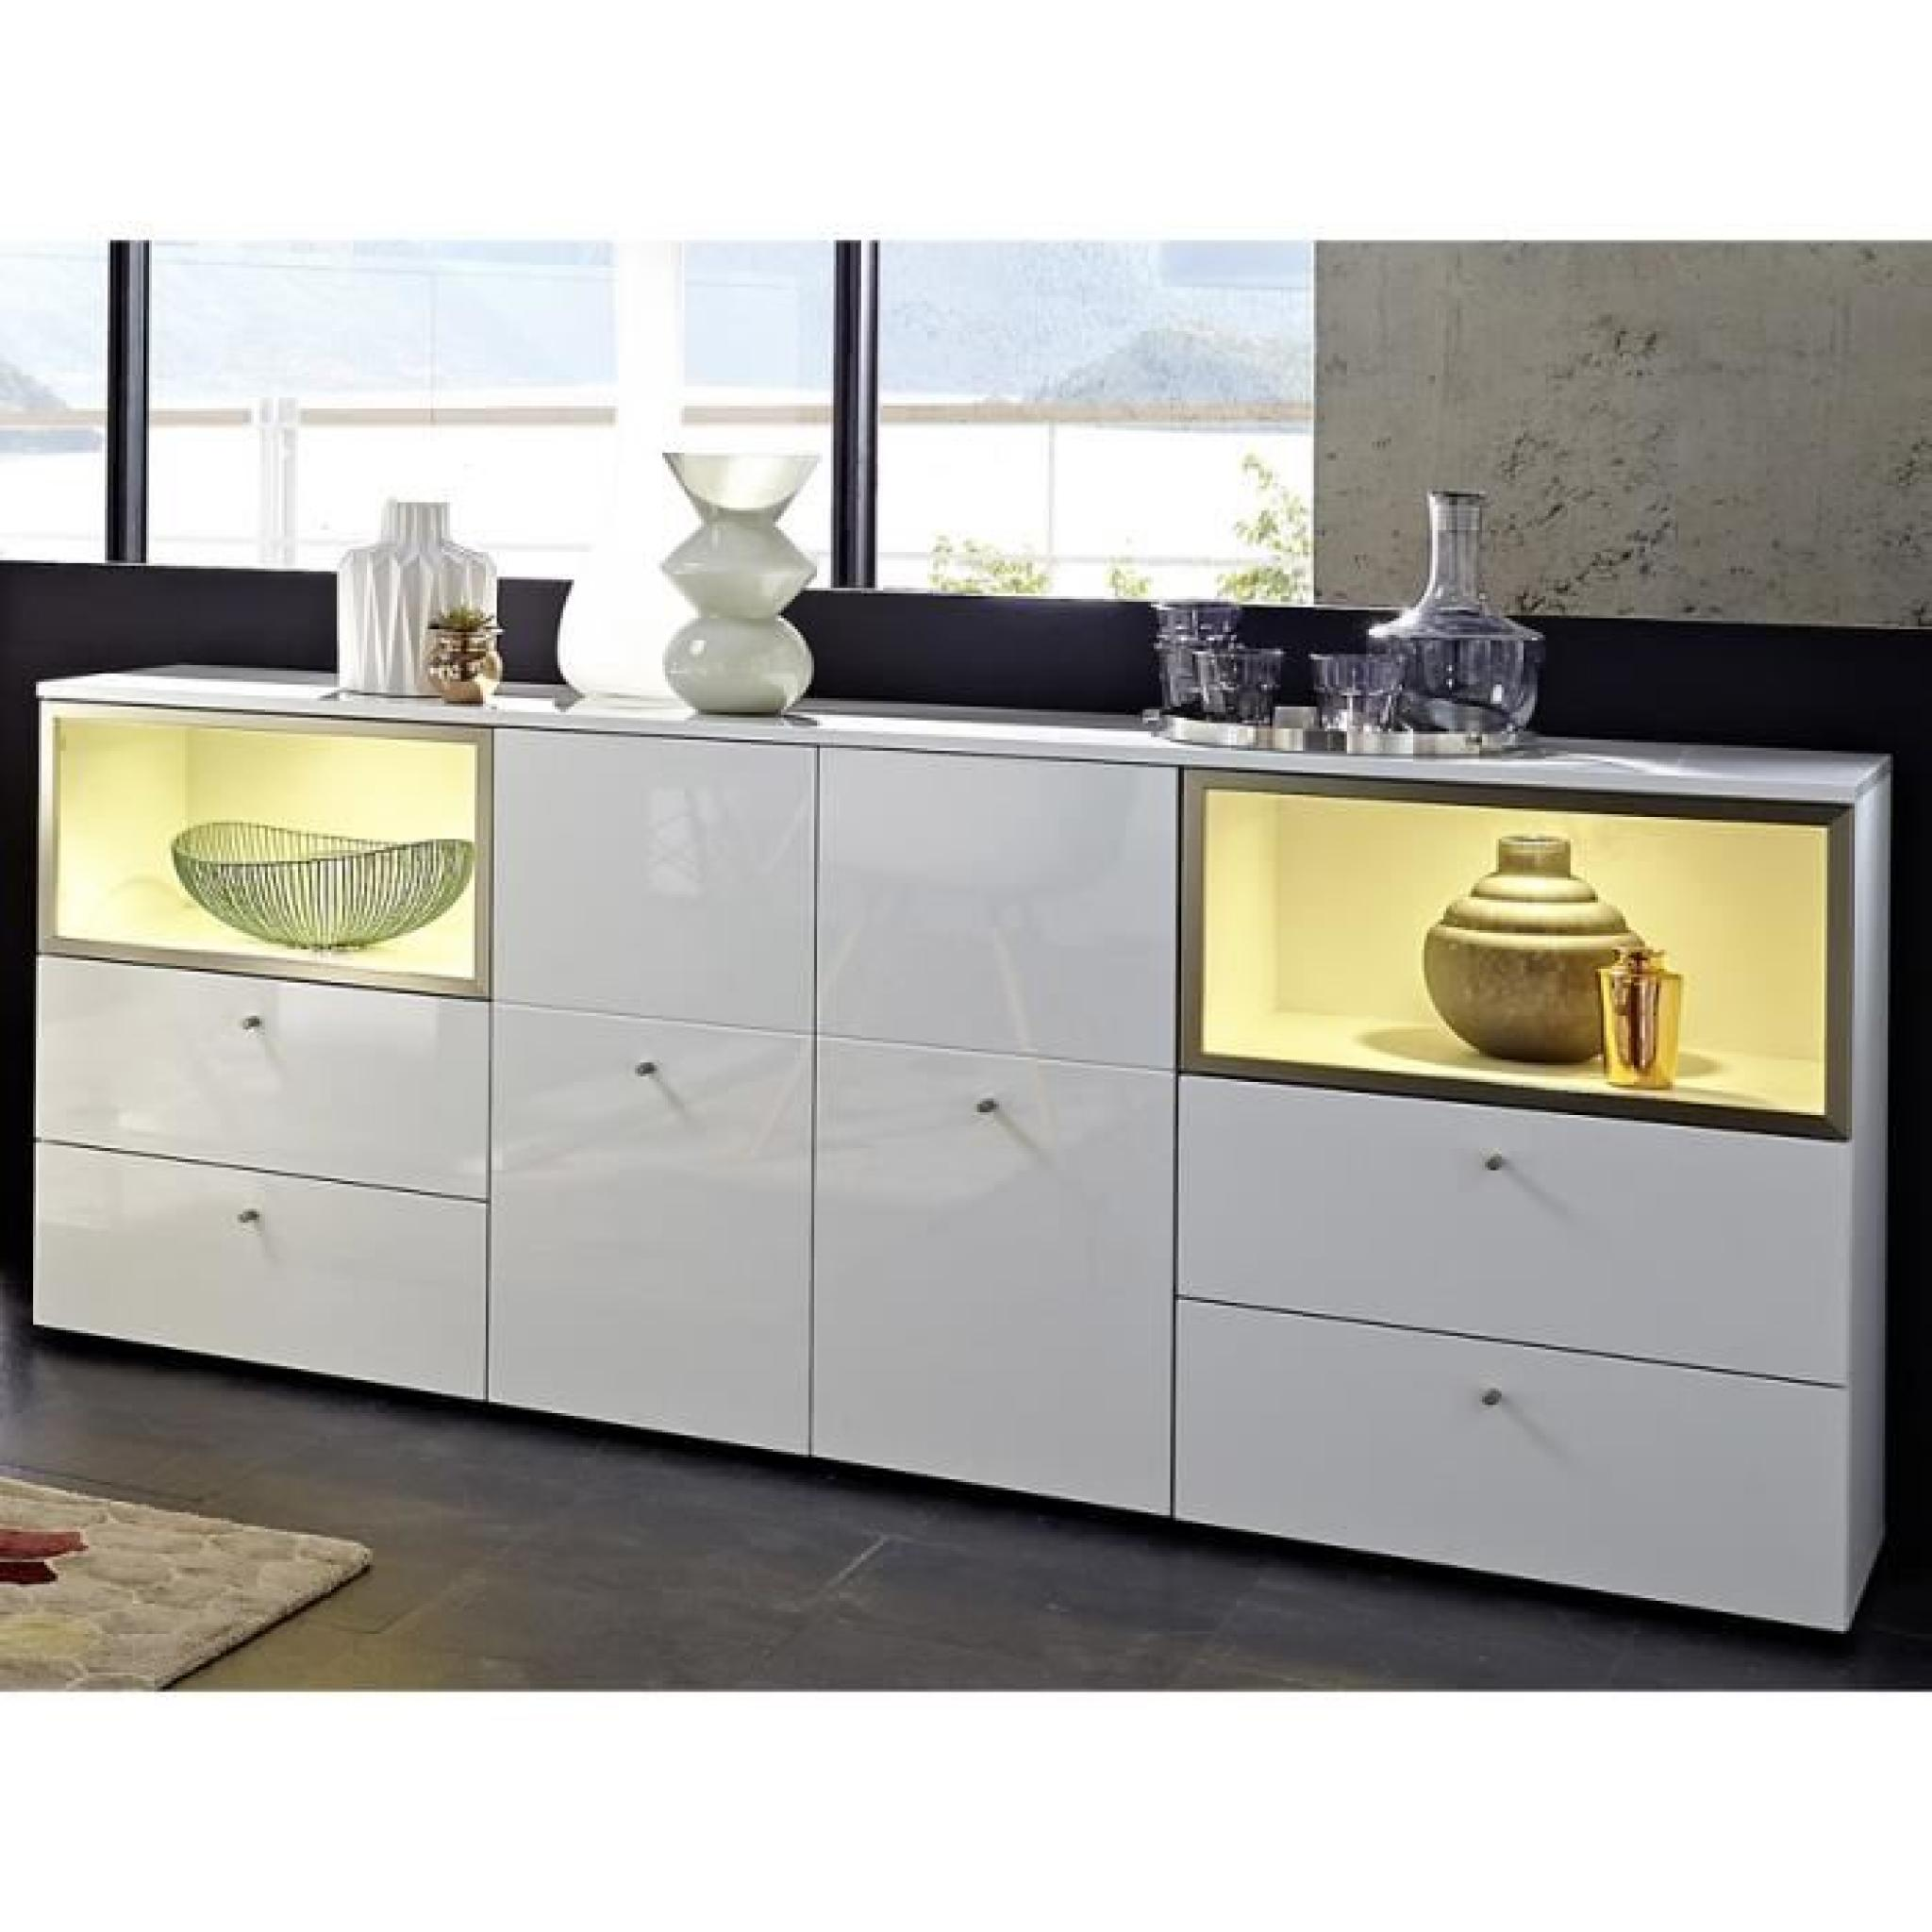 Buffet Bahut Design Free Buffet Bahut Blanc Laqu Design Boston Avec Led With